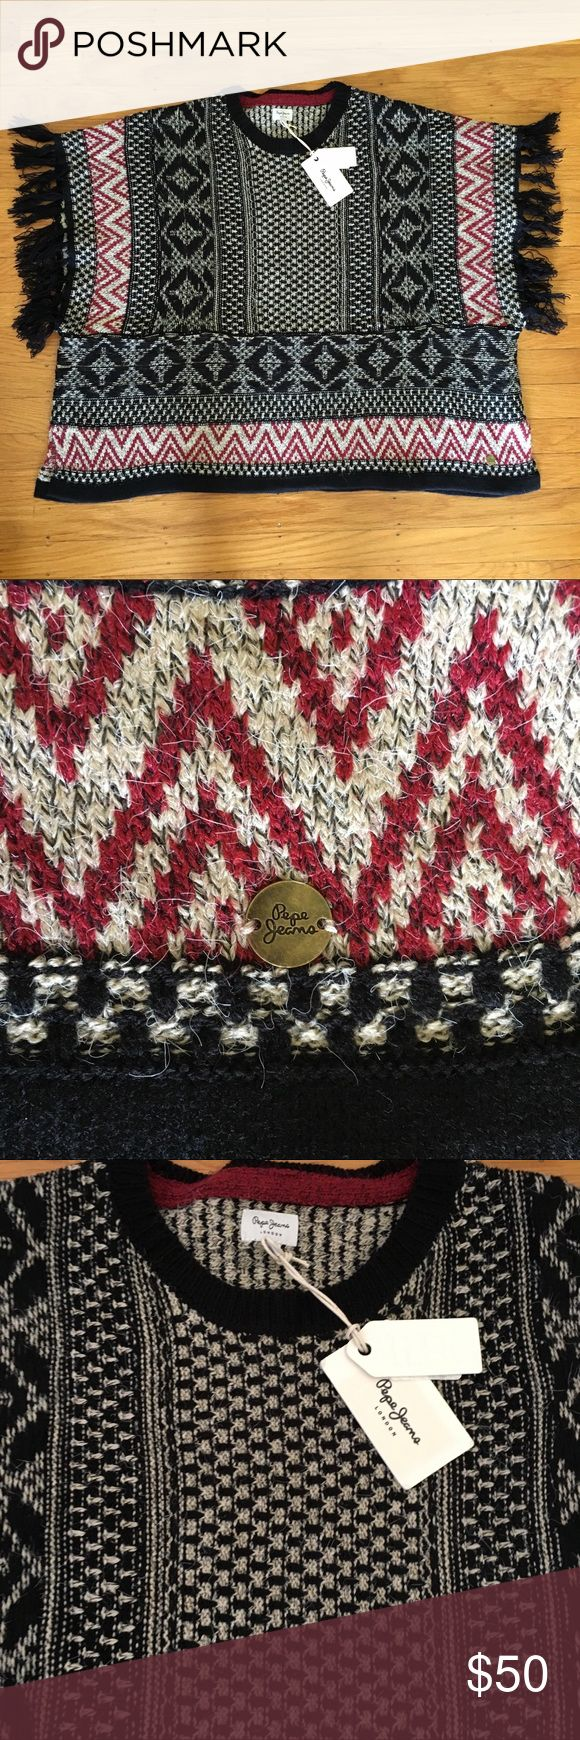 Pepe Jeans poncho sweater cape Black, brick red and cream sweater poncho cape with geometric aztec print and fringe at arms.  Pull over with wide arms hope and slits at each side.  Pepe Jeans from ASOS ASOS Sweaters Shrugs & Ponchos